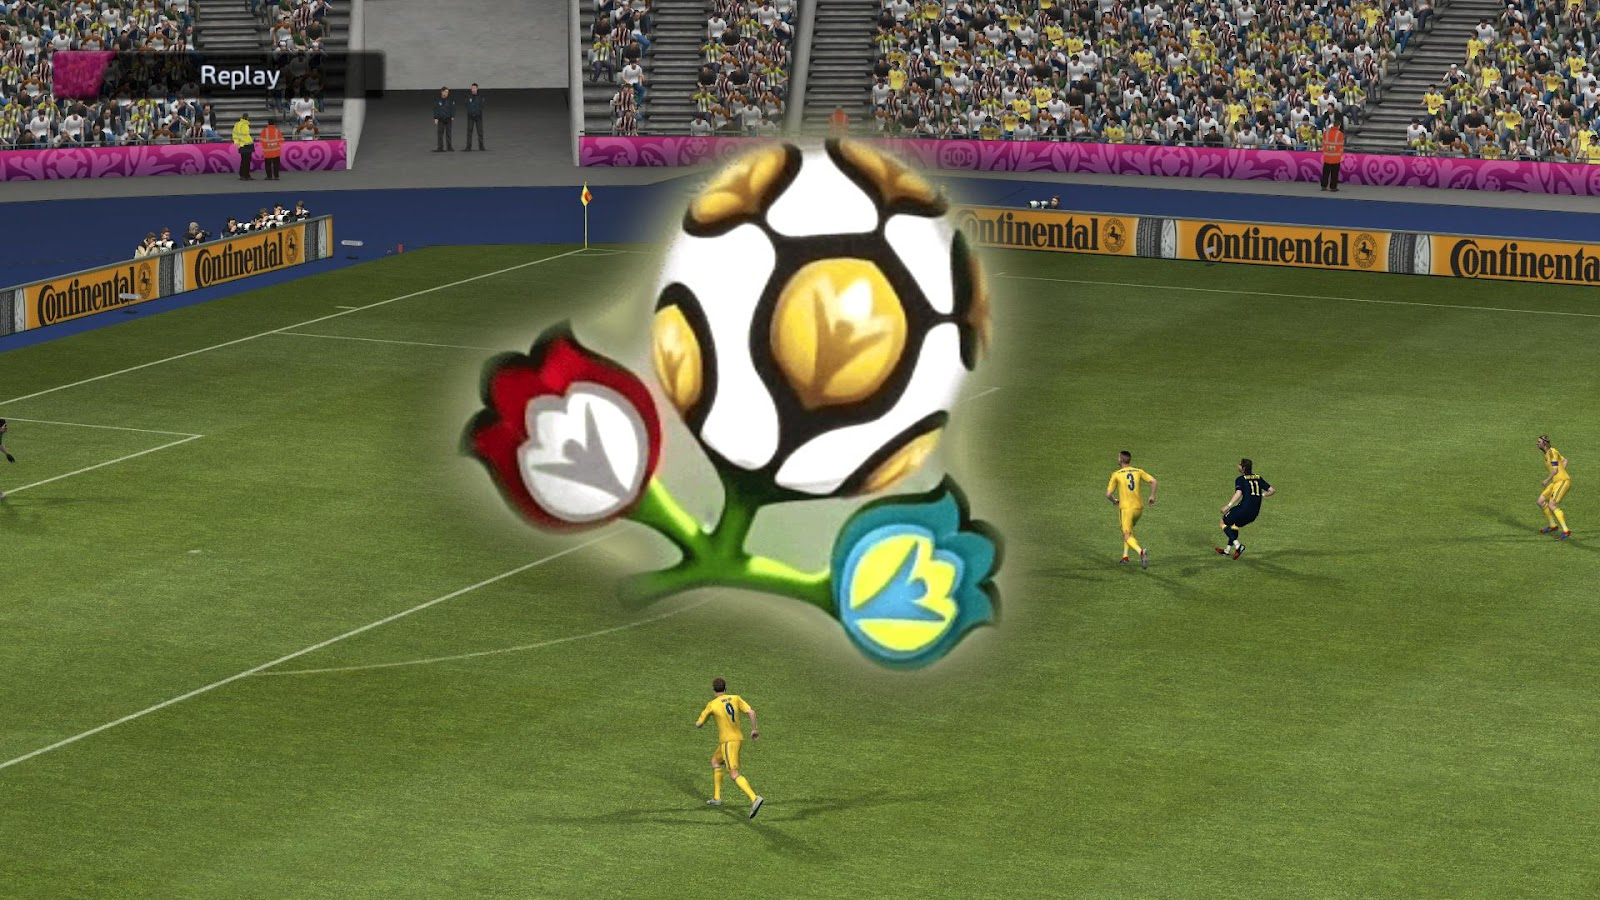 PES2012 EURO 2012 DLC unofficial patch full preview